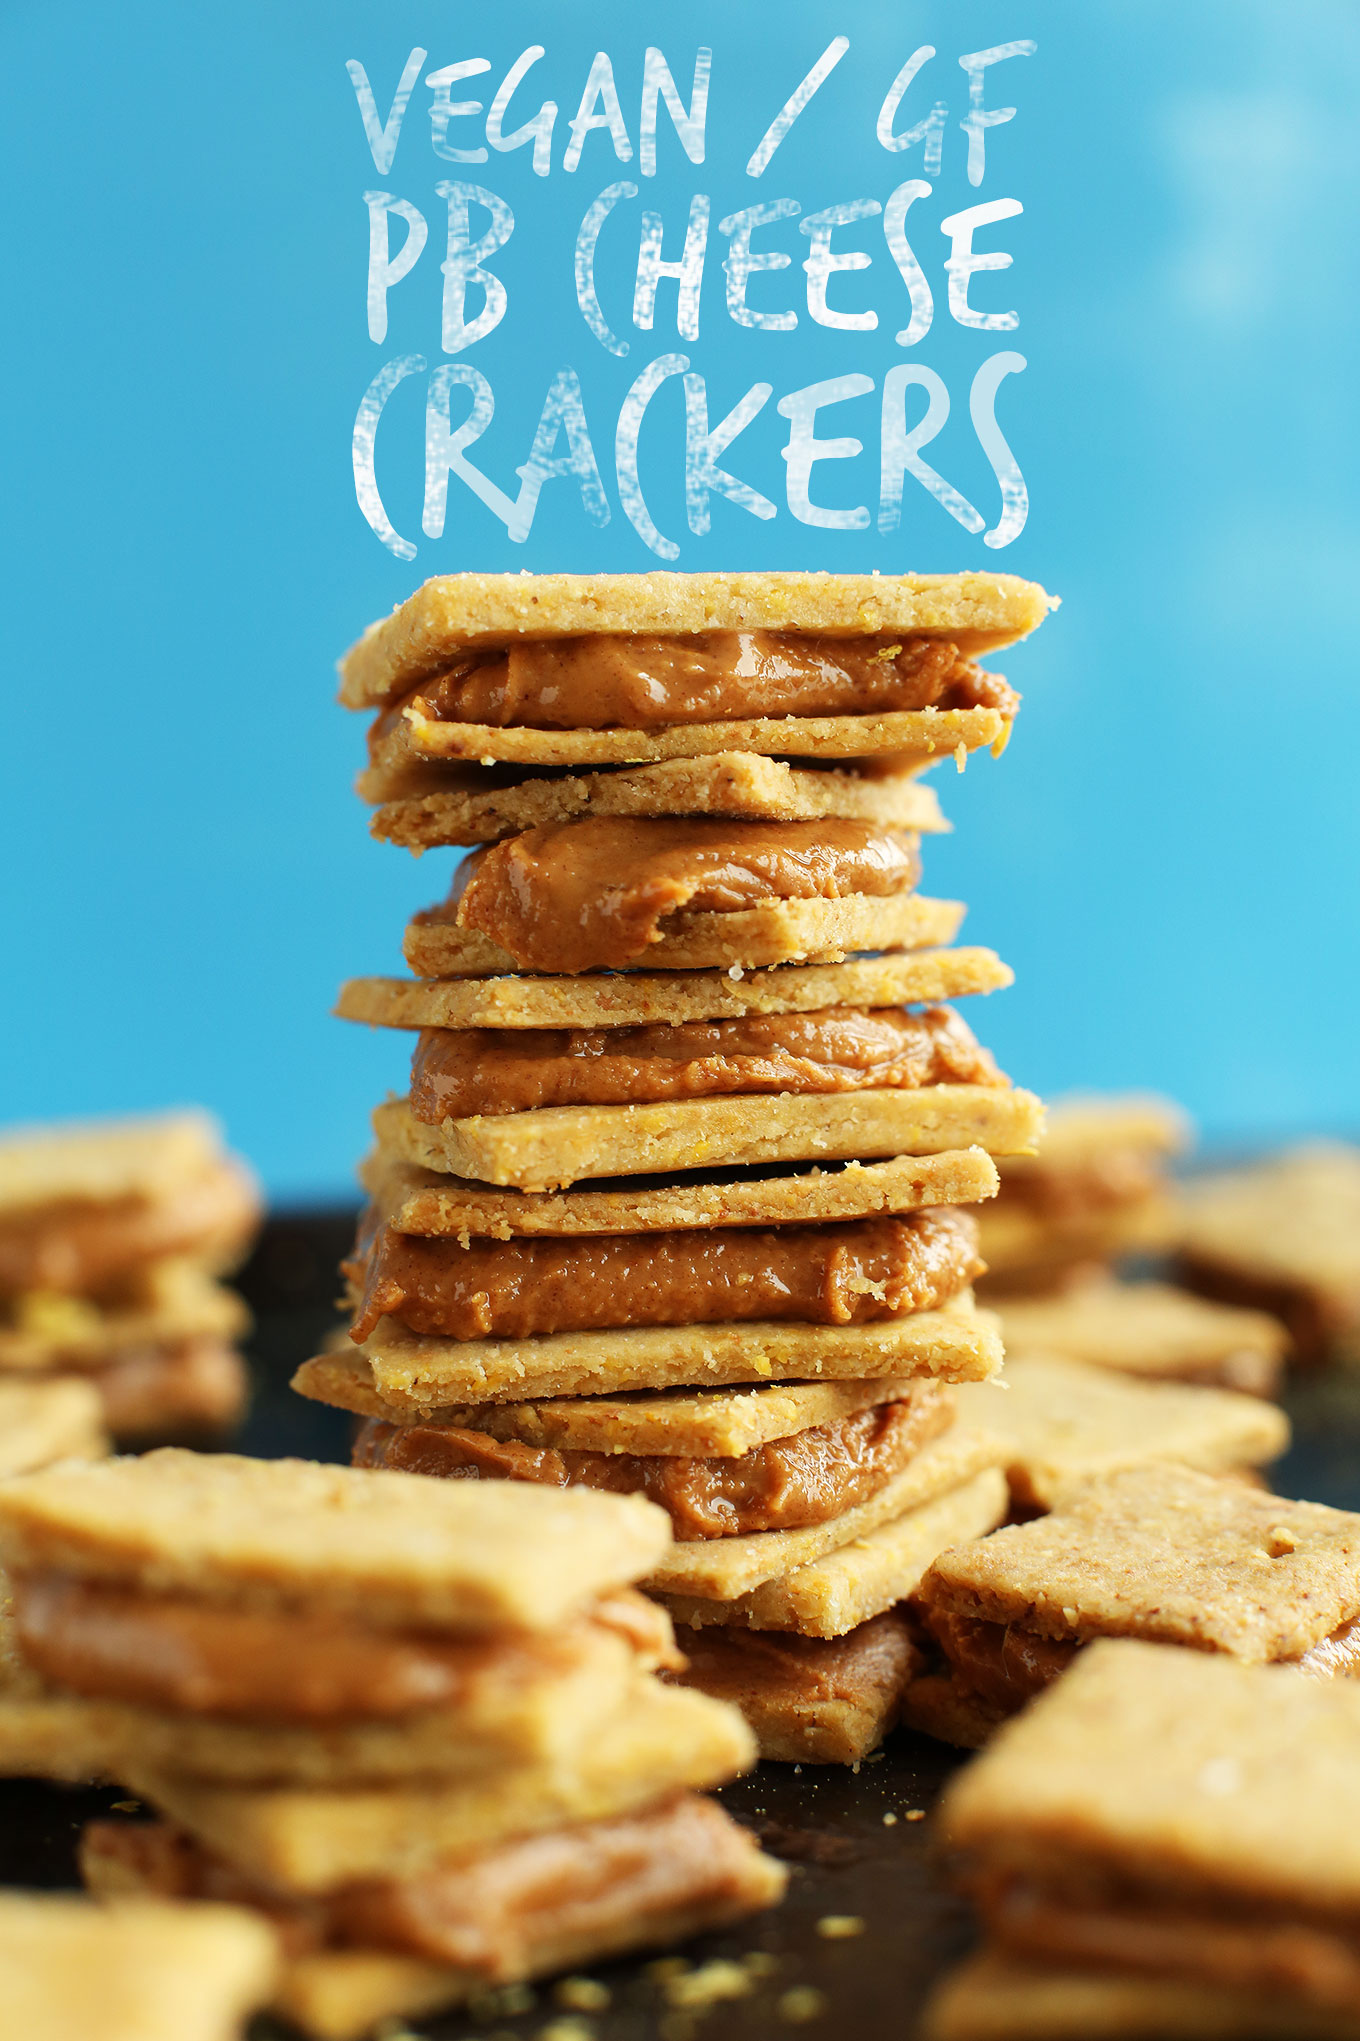 Vegan and gluten-free Peanut Butter Cheese Crackers stacked up for a healthy snack